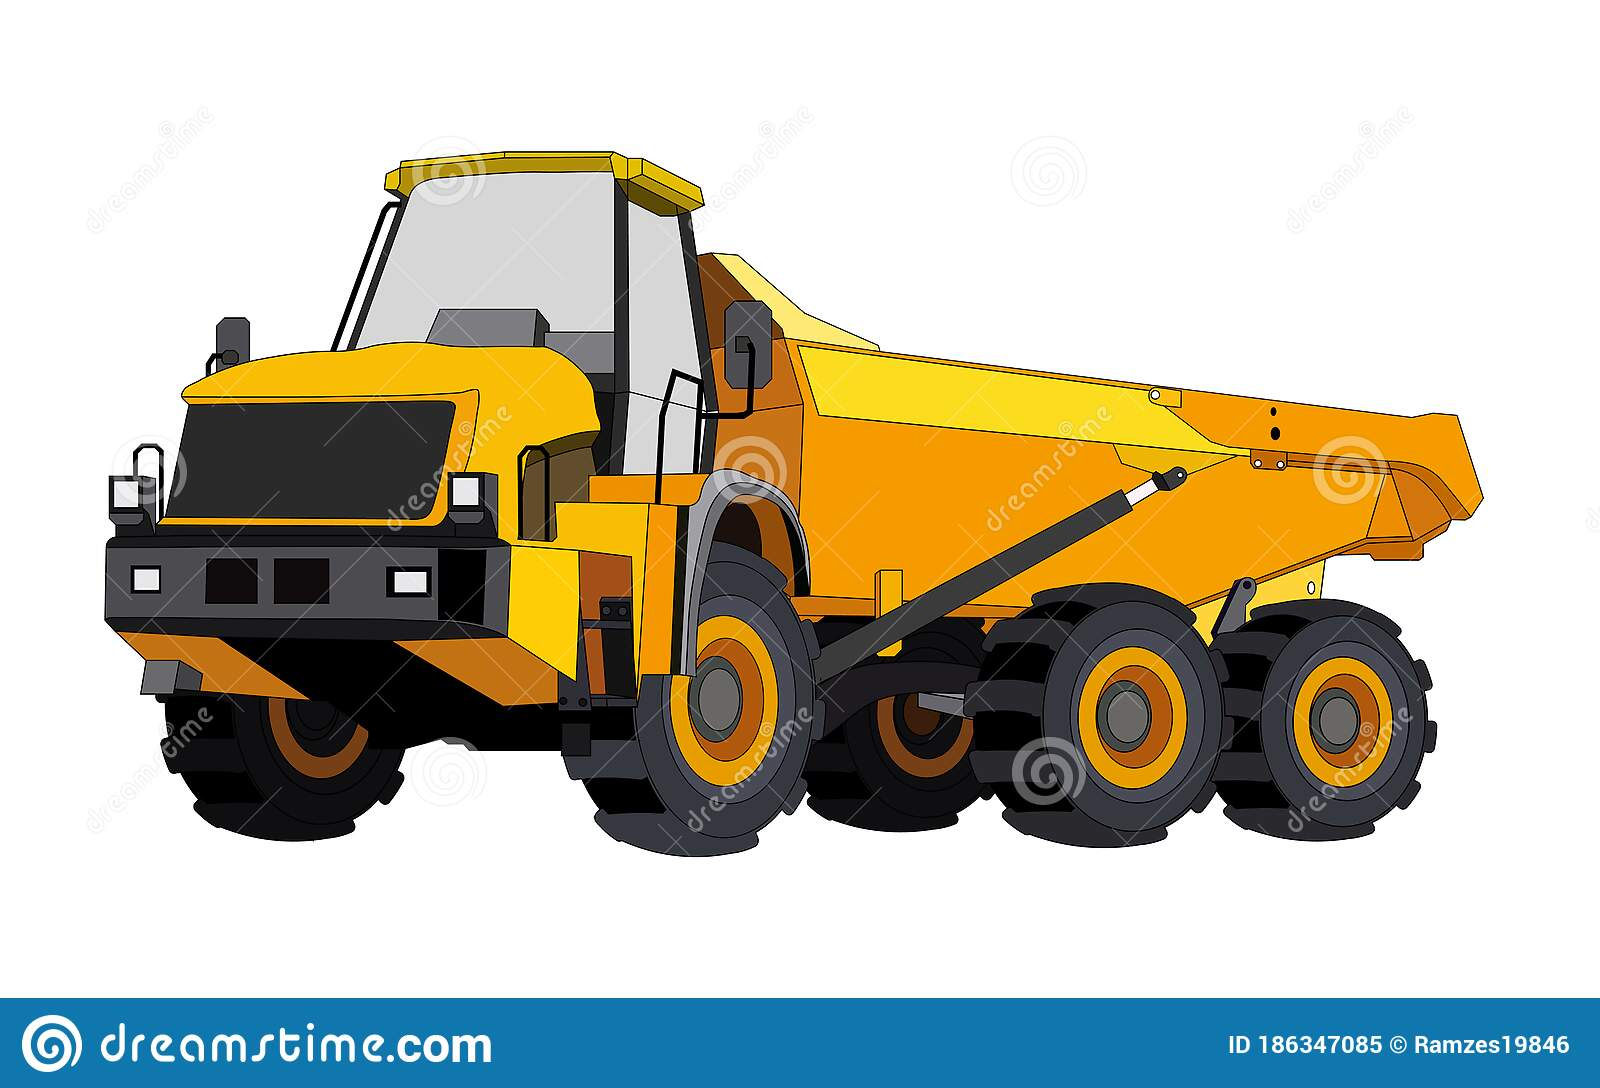 Black And Yellow Construction Dump Truck. Industrial Machinery And Equipment.  Isolated Vector On White Stock Vector - Illustration of contractor,  forklift: 186347085